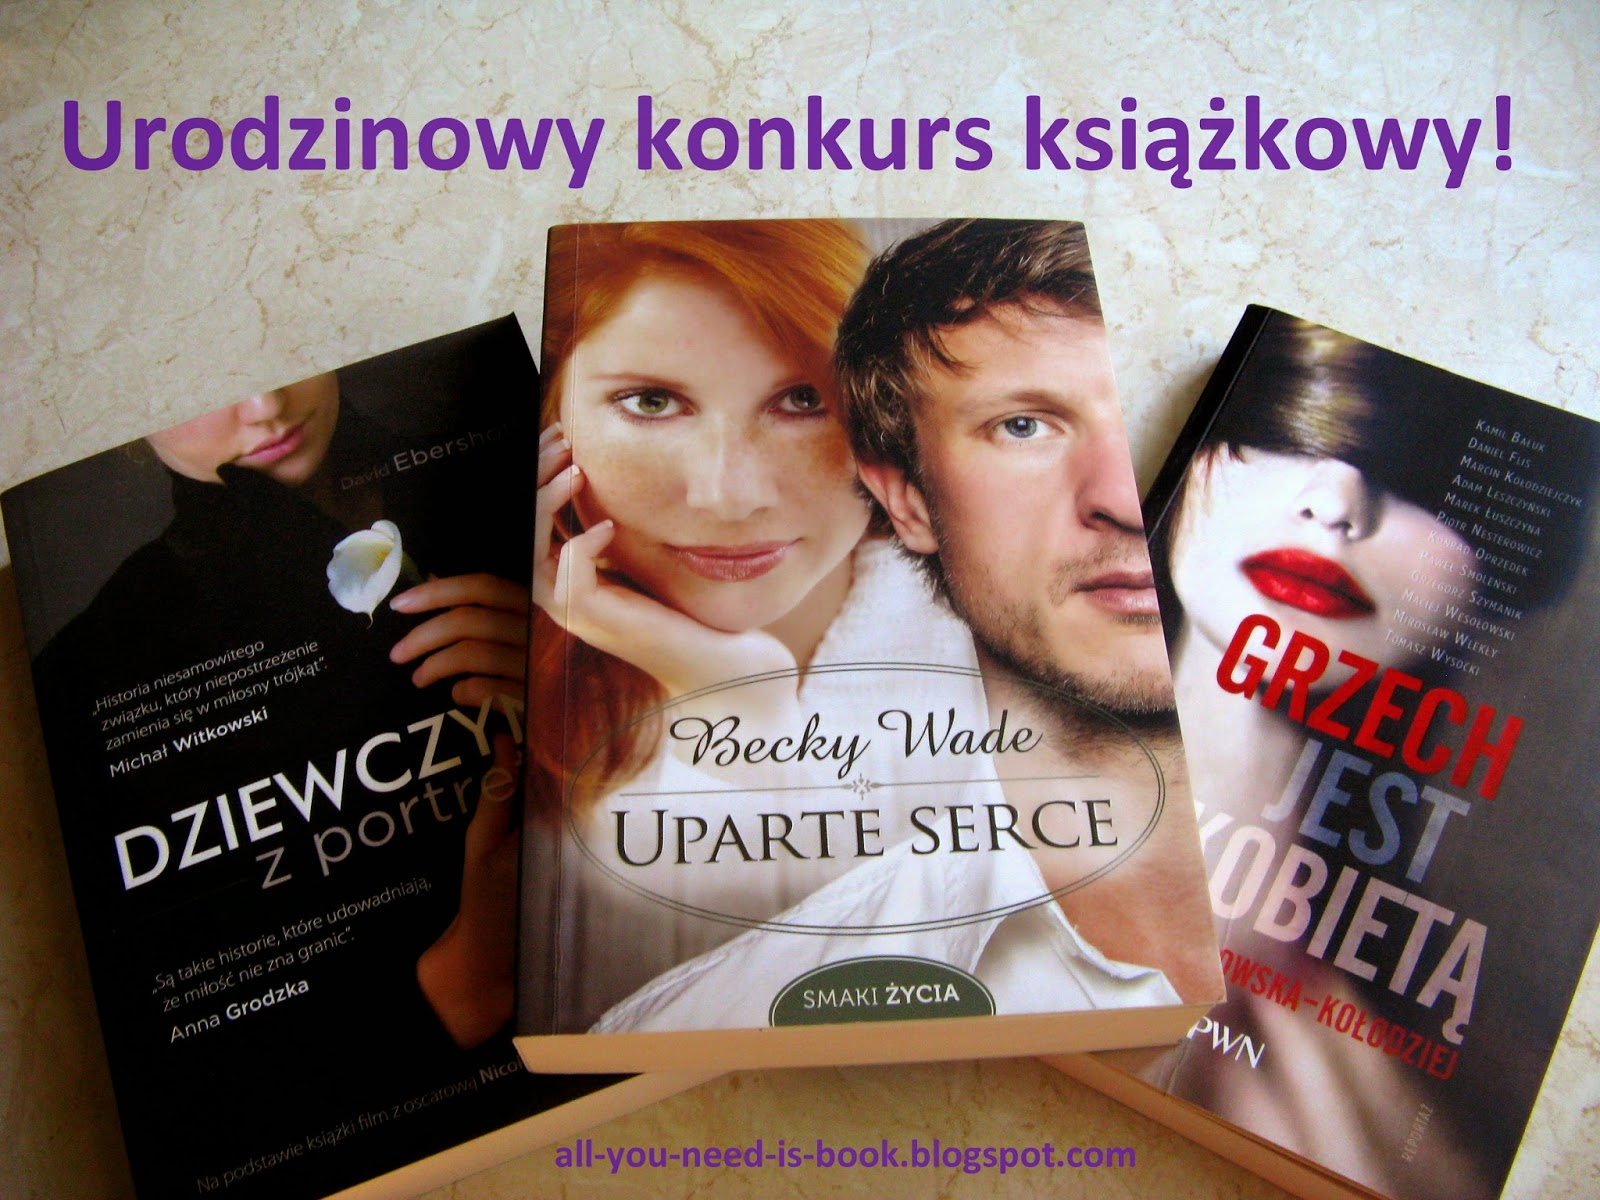 http://all-you-need-is-book.blogspot.com/2014/08/urodzinowy-konkurs-ksiazkowy.html